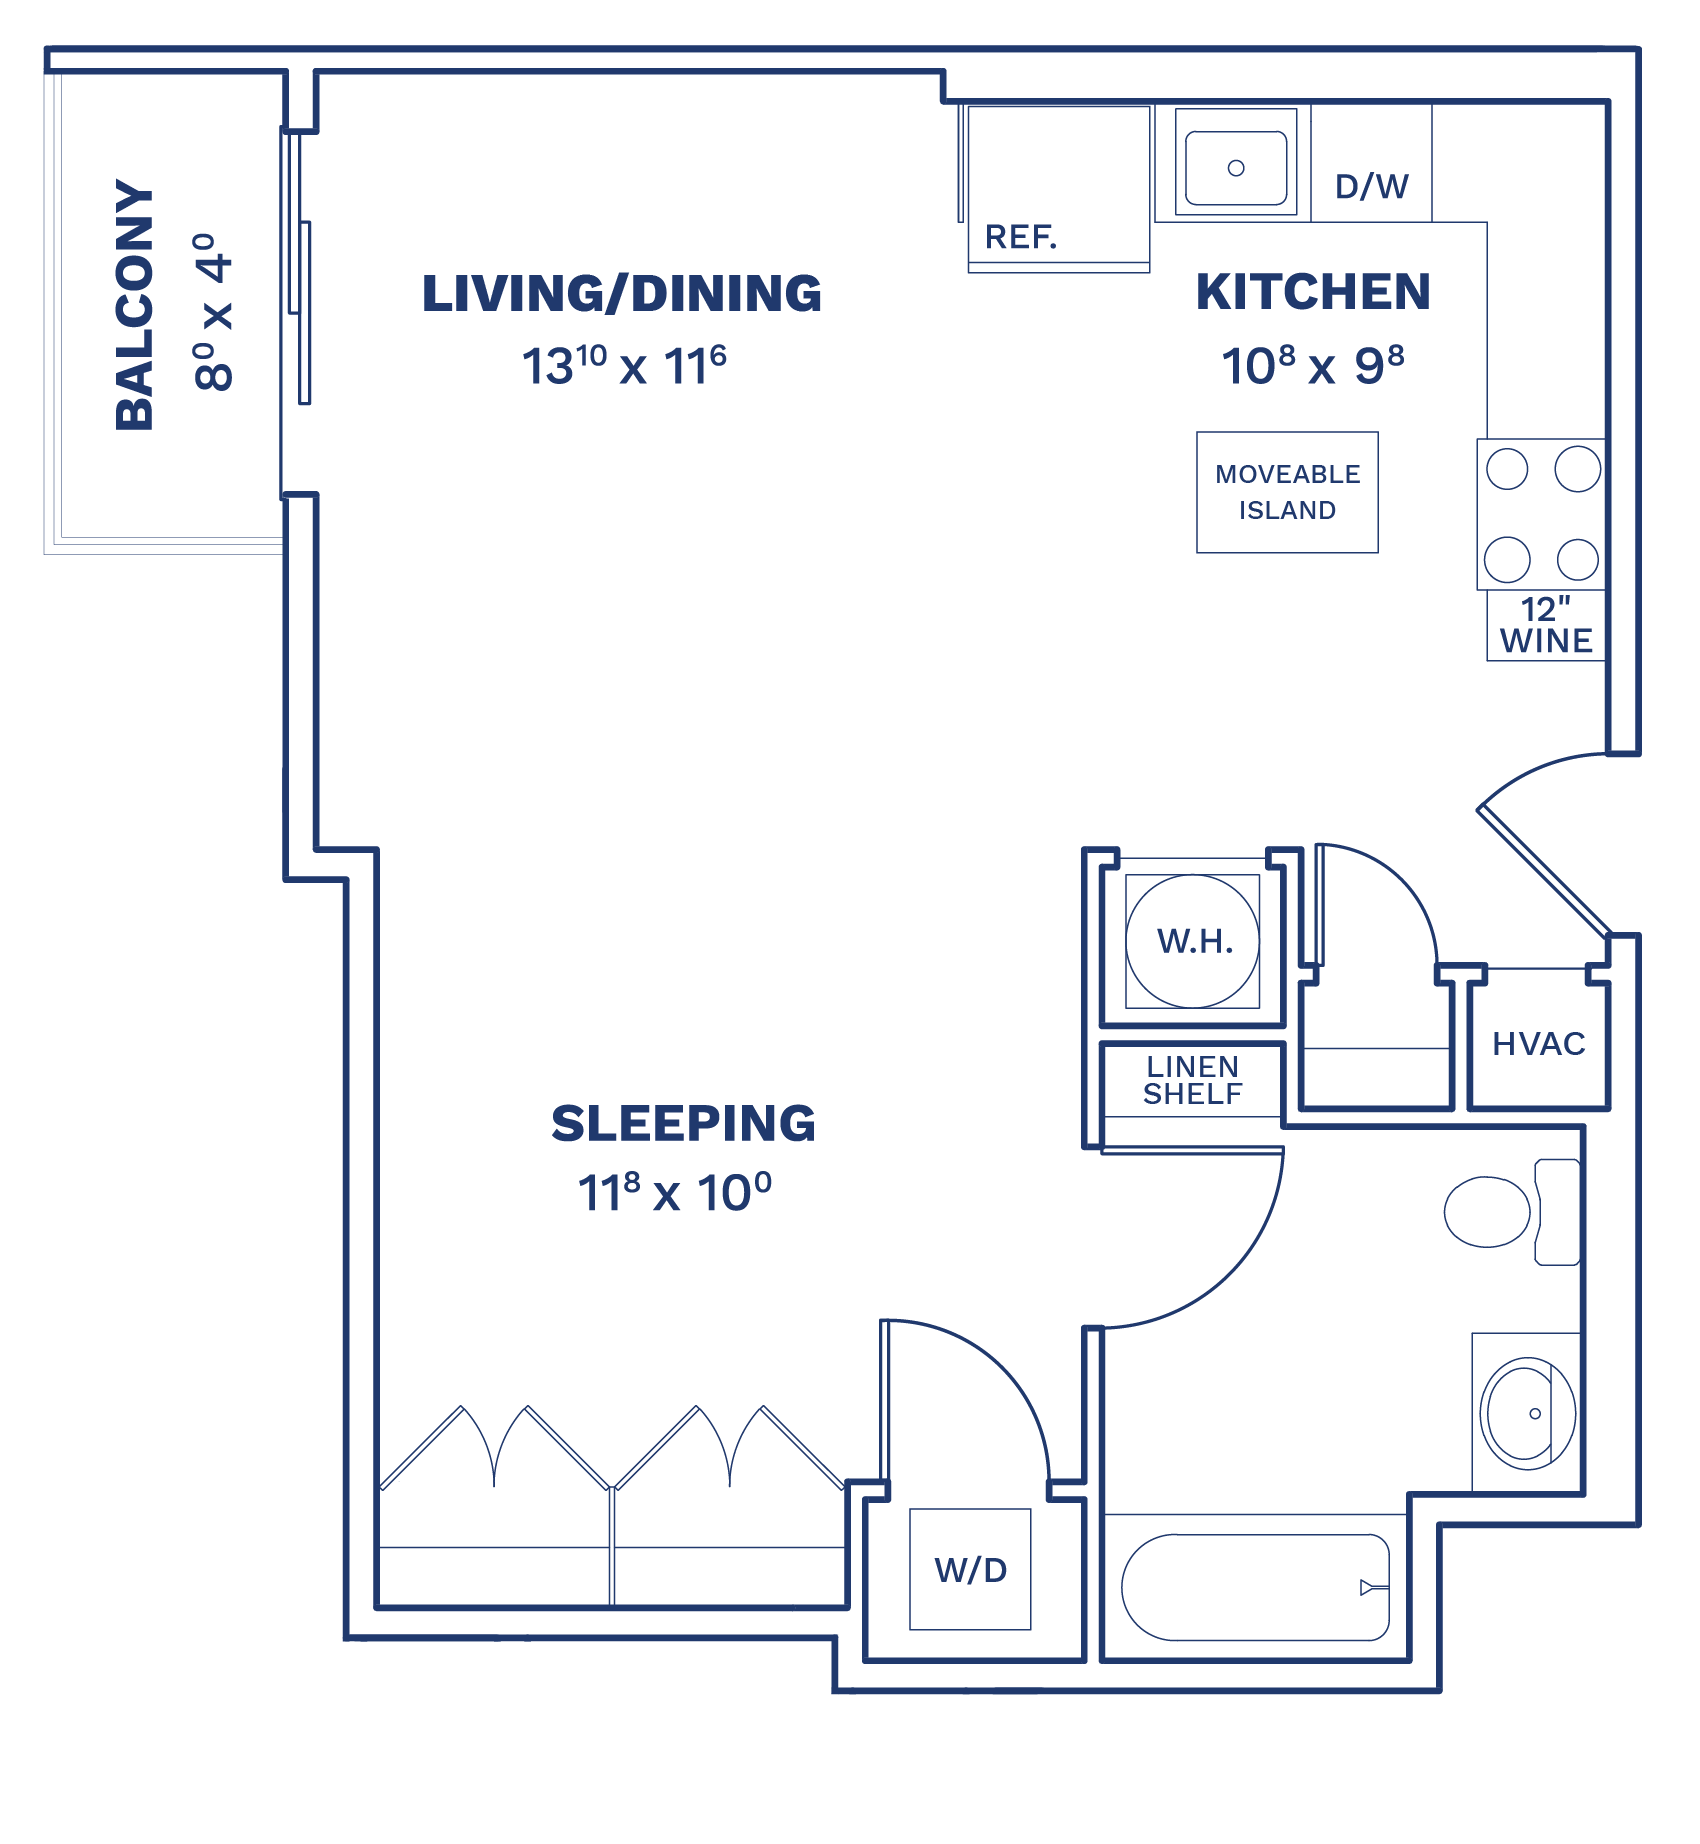 Floorplan of Unit S4